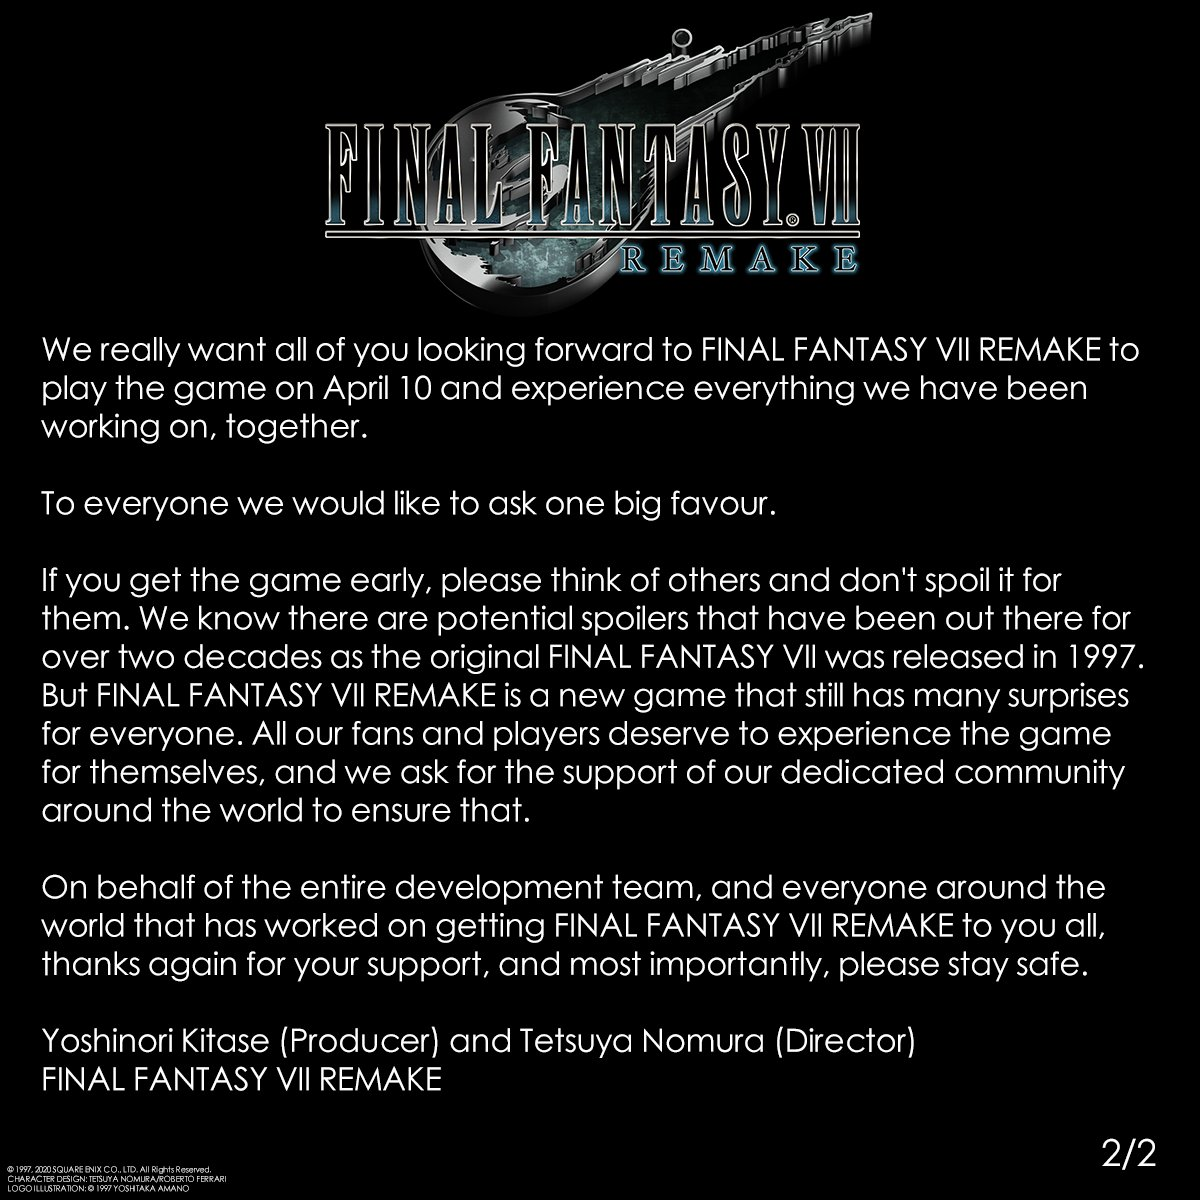 Обращение по поводу Final Fantasy VII Remake